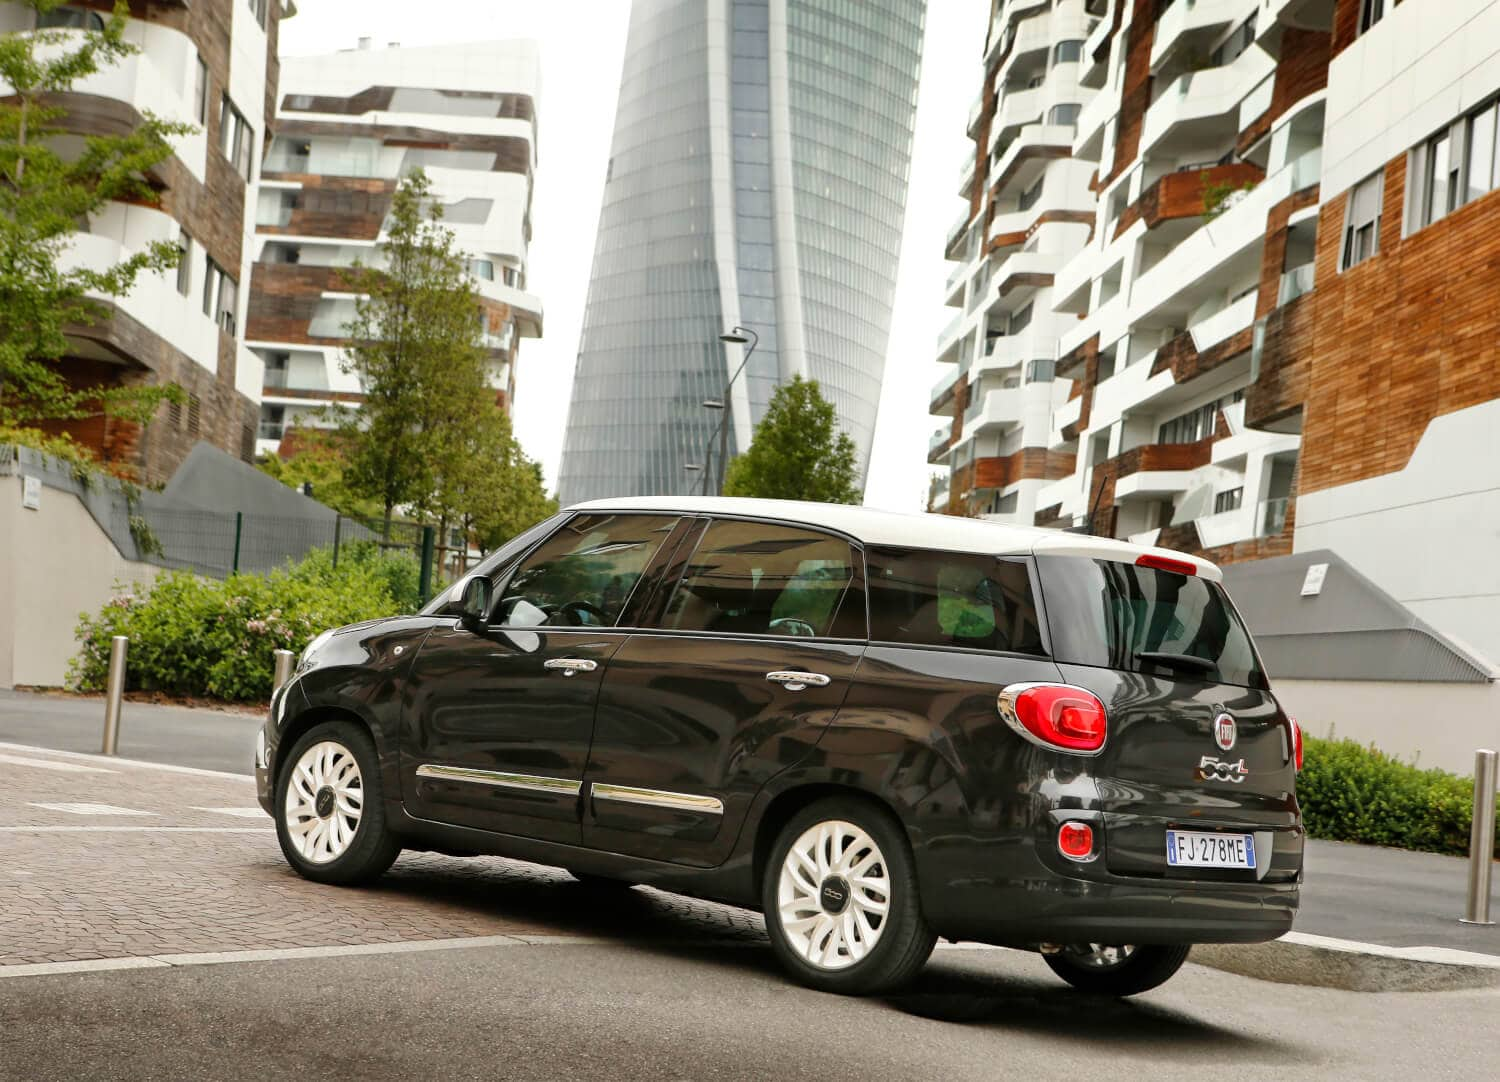 fiat 500l jetzt als urban wagon und cross autosprintch. Black Bedroom Furniture Sets. Home Design Ideas